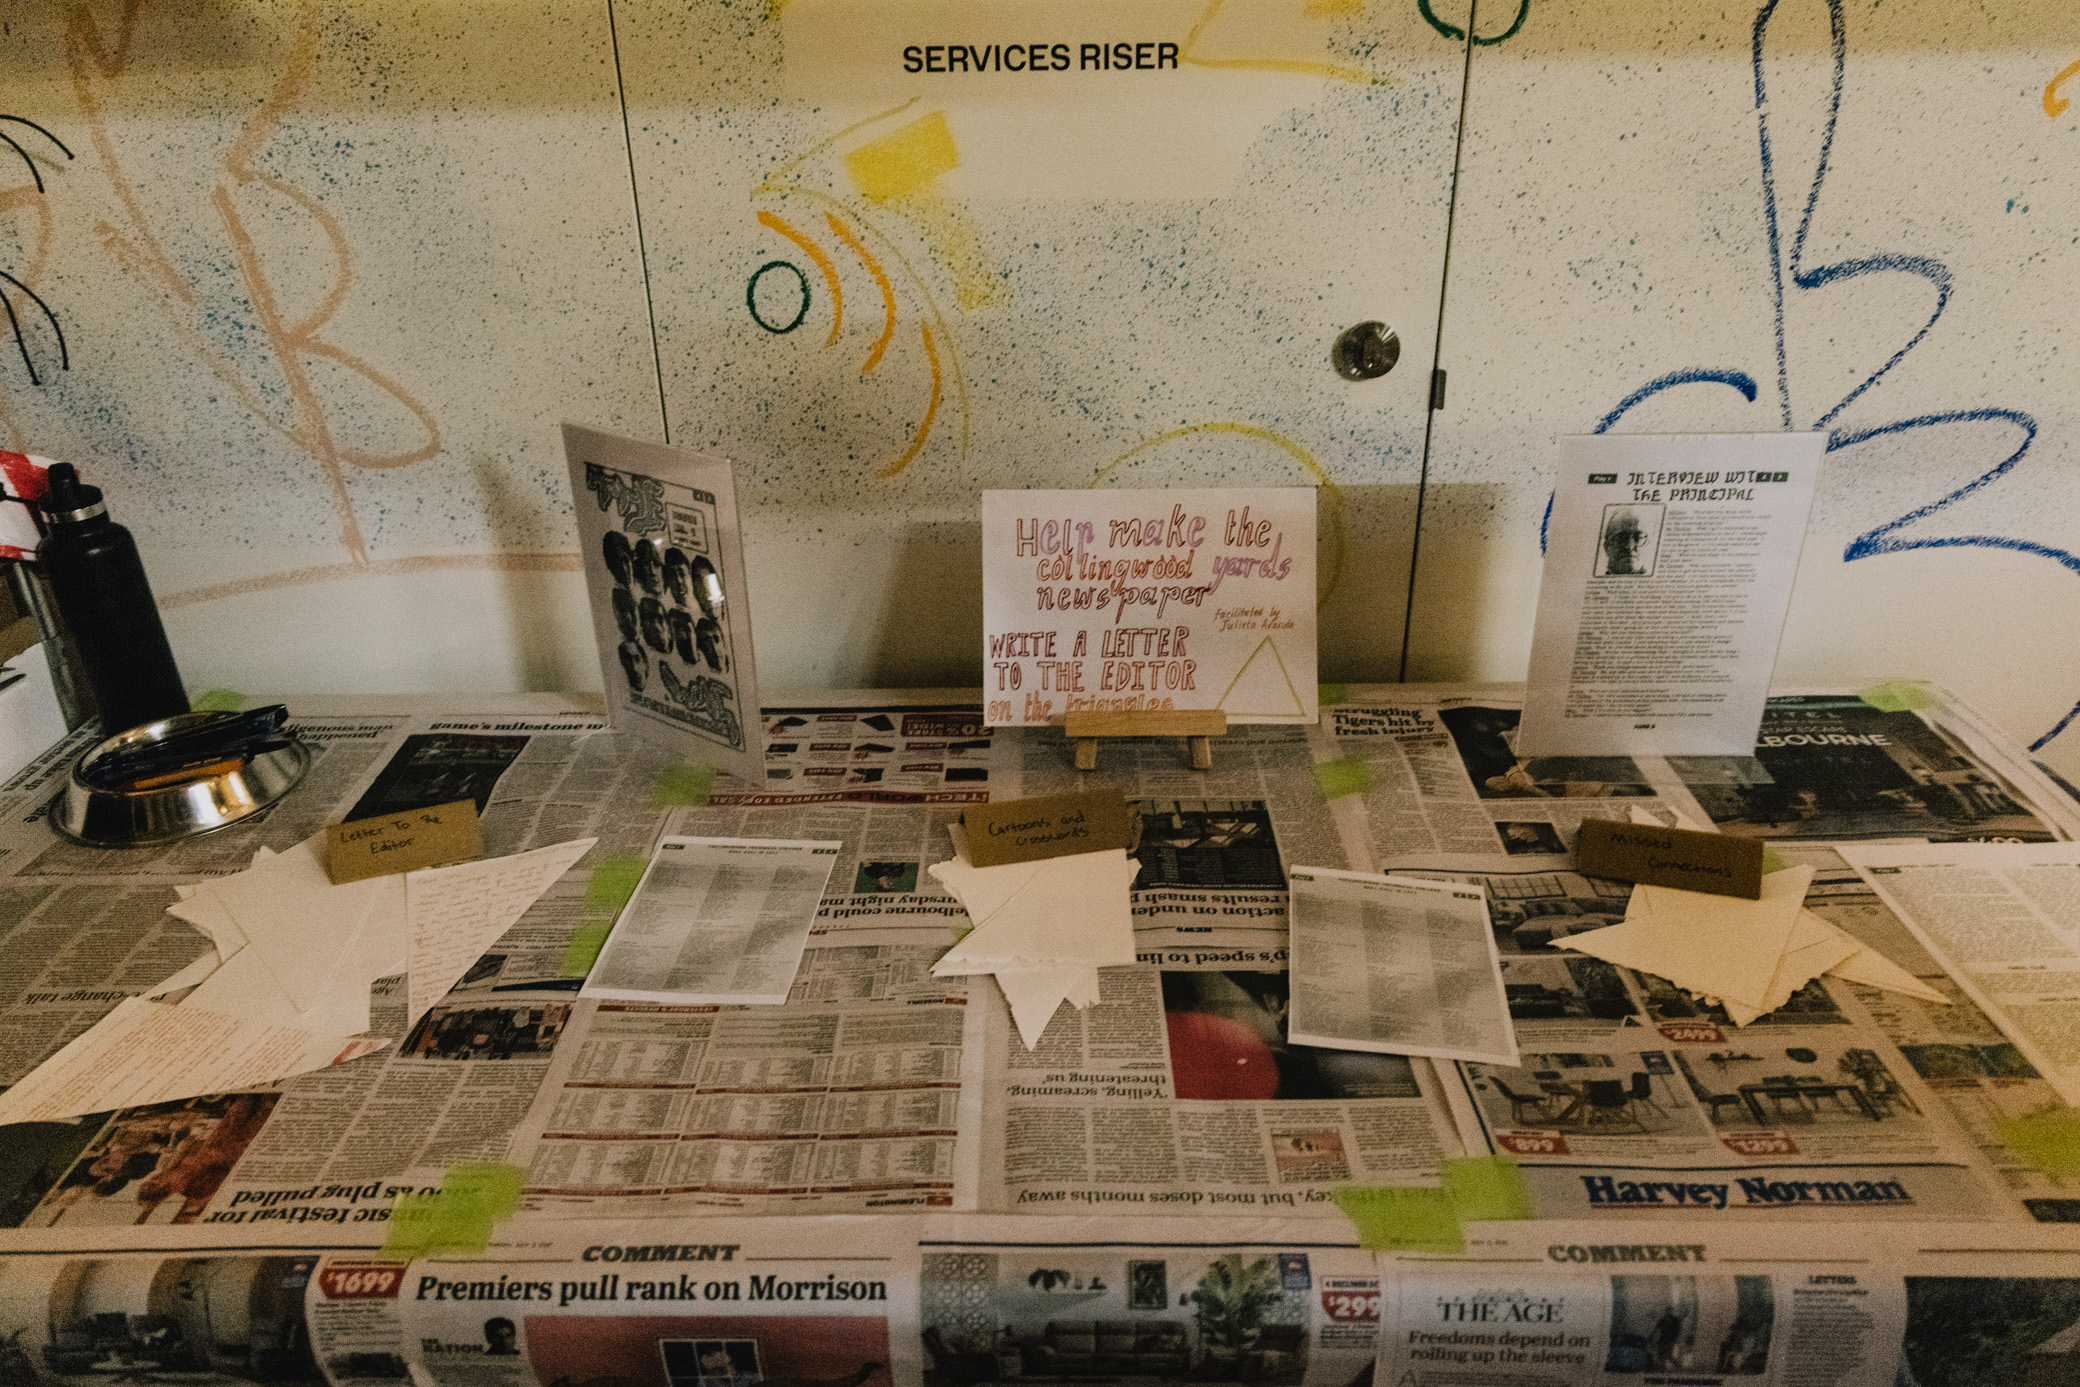 a table covered in newspaper with notes and signs